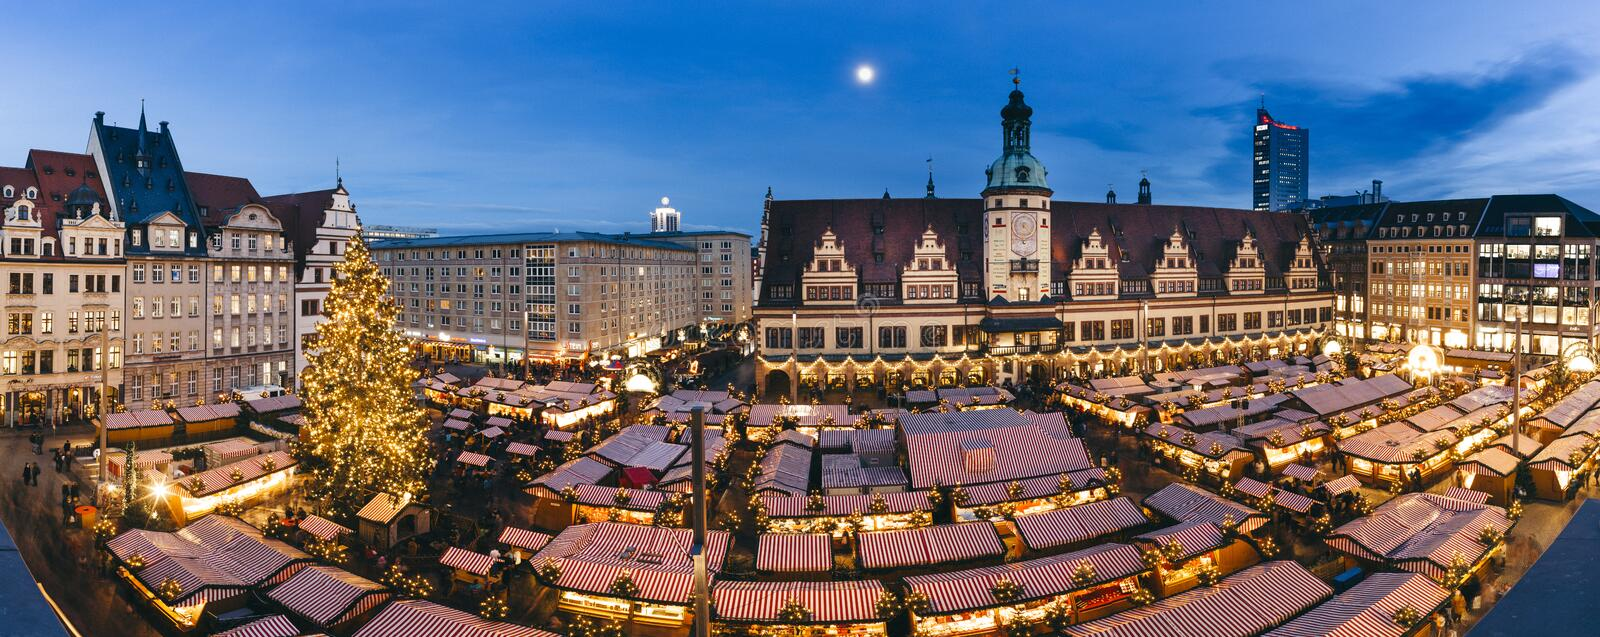 Central square of Leipzig, Germany, with Christmas market. Central Square with Christmas market in Leipzig, Germany, at night royalty free stock photos